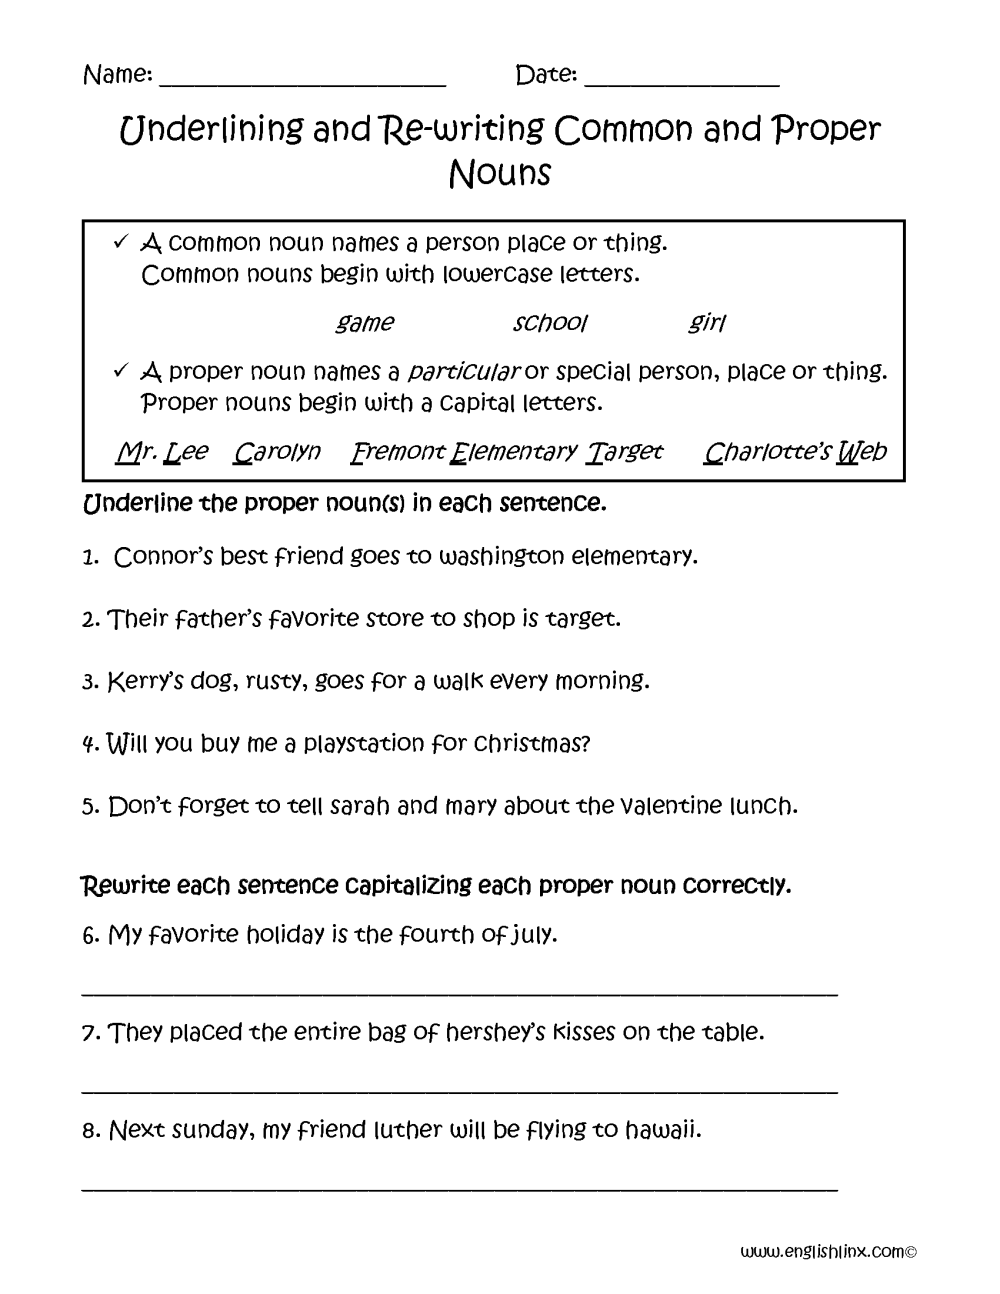 medium resolution of Proper and Common Nouns Worksheets   Underlining and Rewriting Proper and  Common Nouns Worksheets